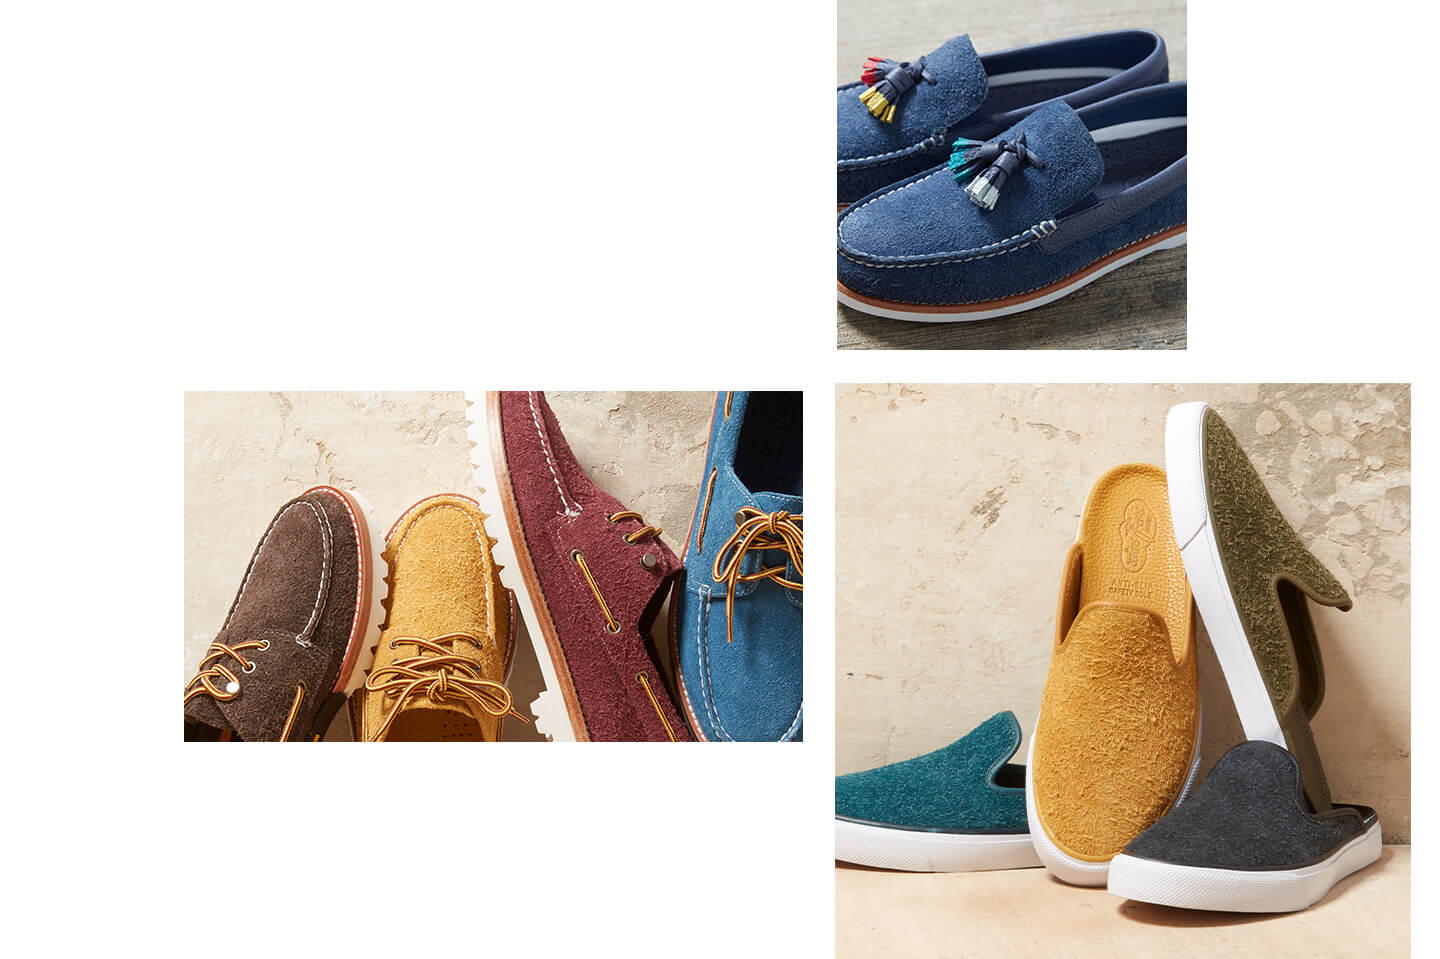 Collage of shoes from the Suede collection.